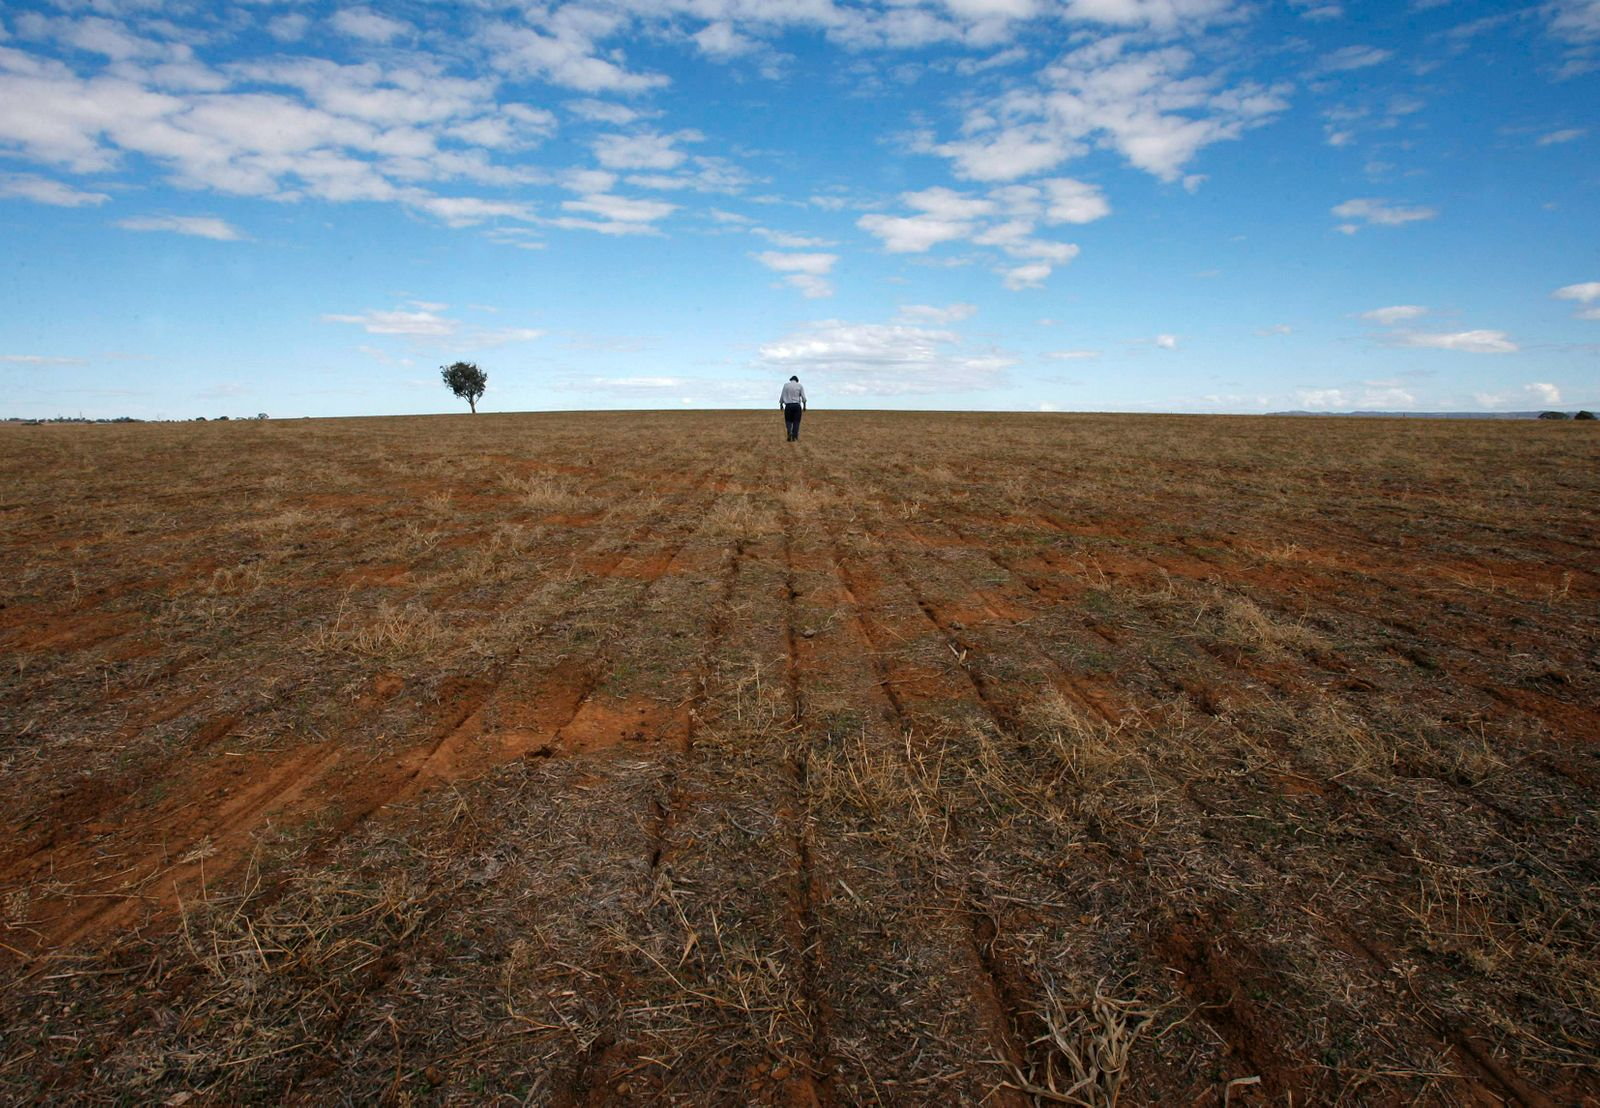 Farmer Fagan inspects rows of seeds in New South Wales